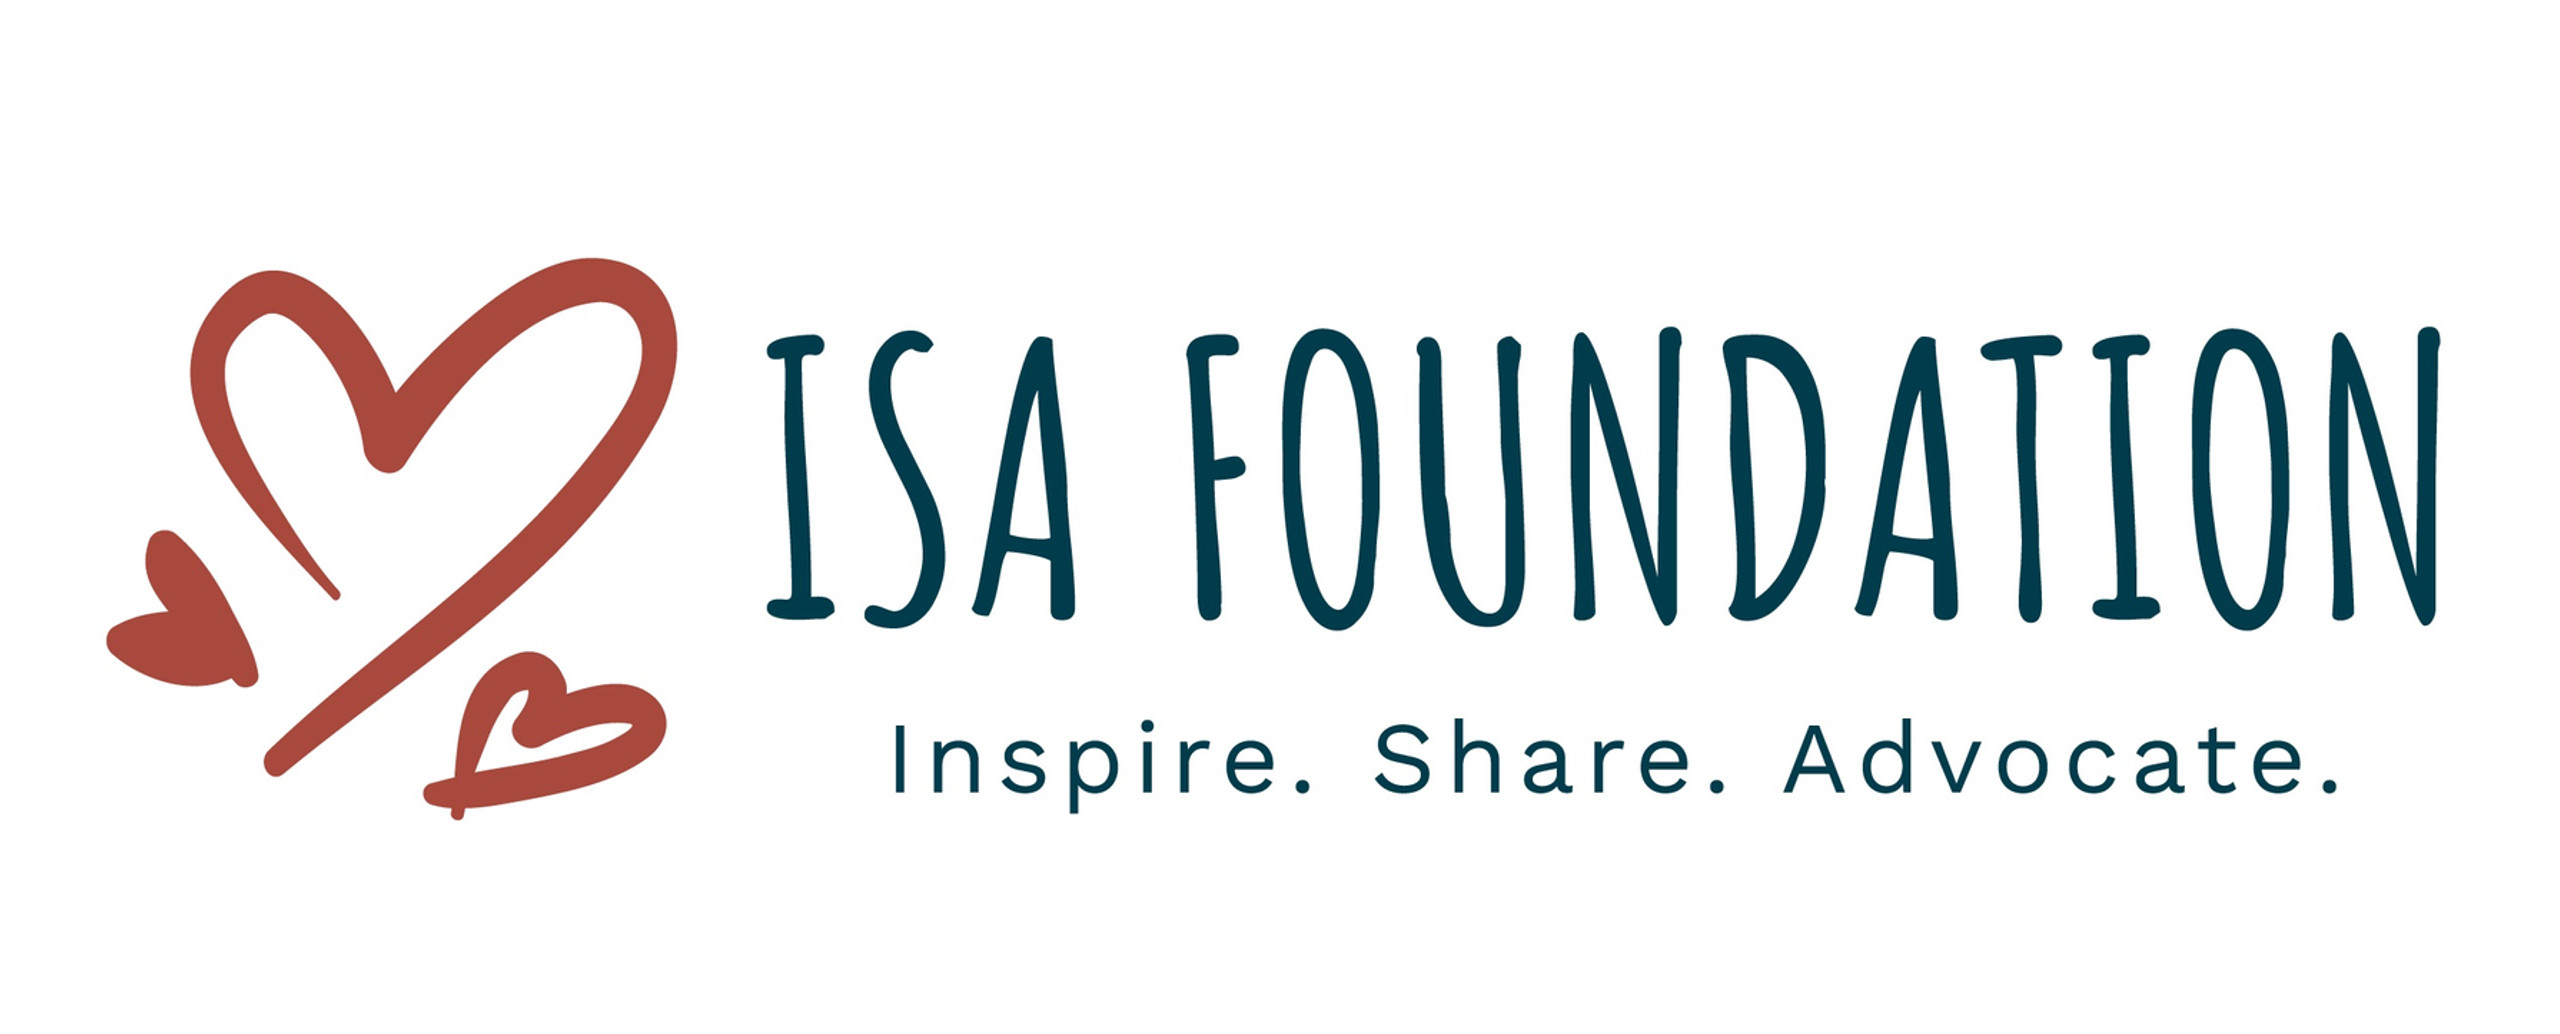 isa-foundation-7608-TwoColor